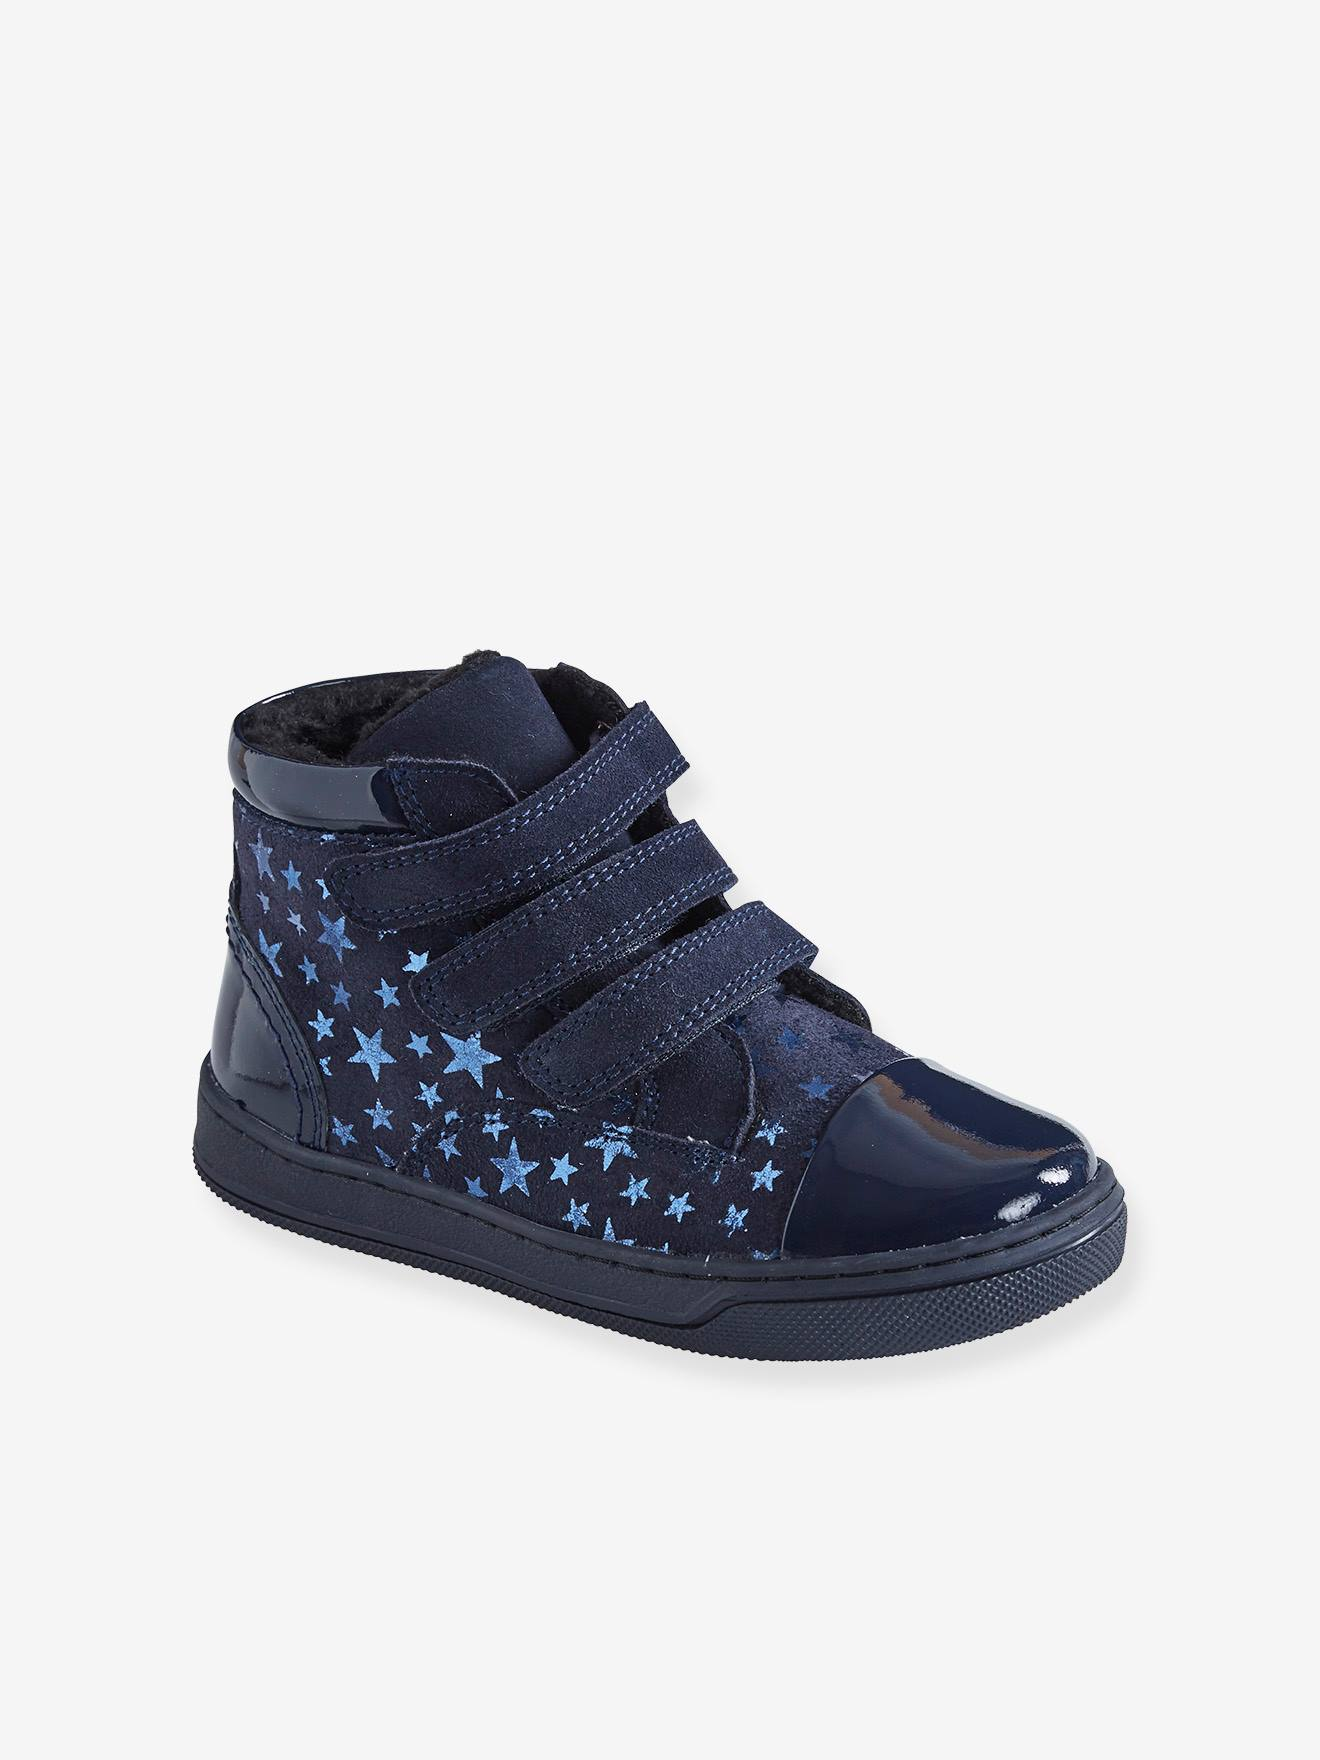 High Top Leather Trainers for Girls